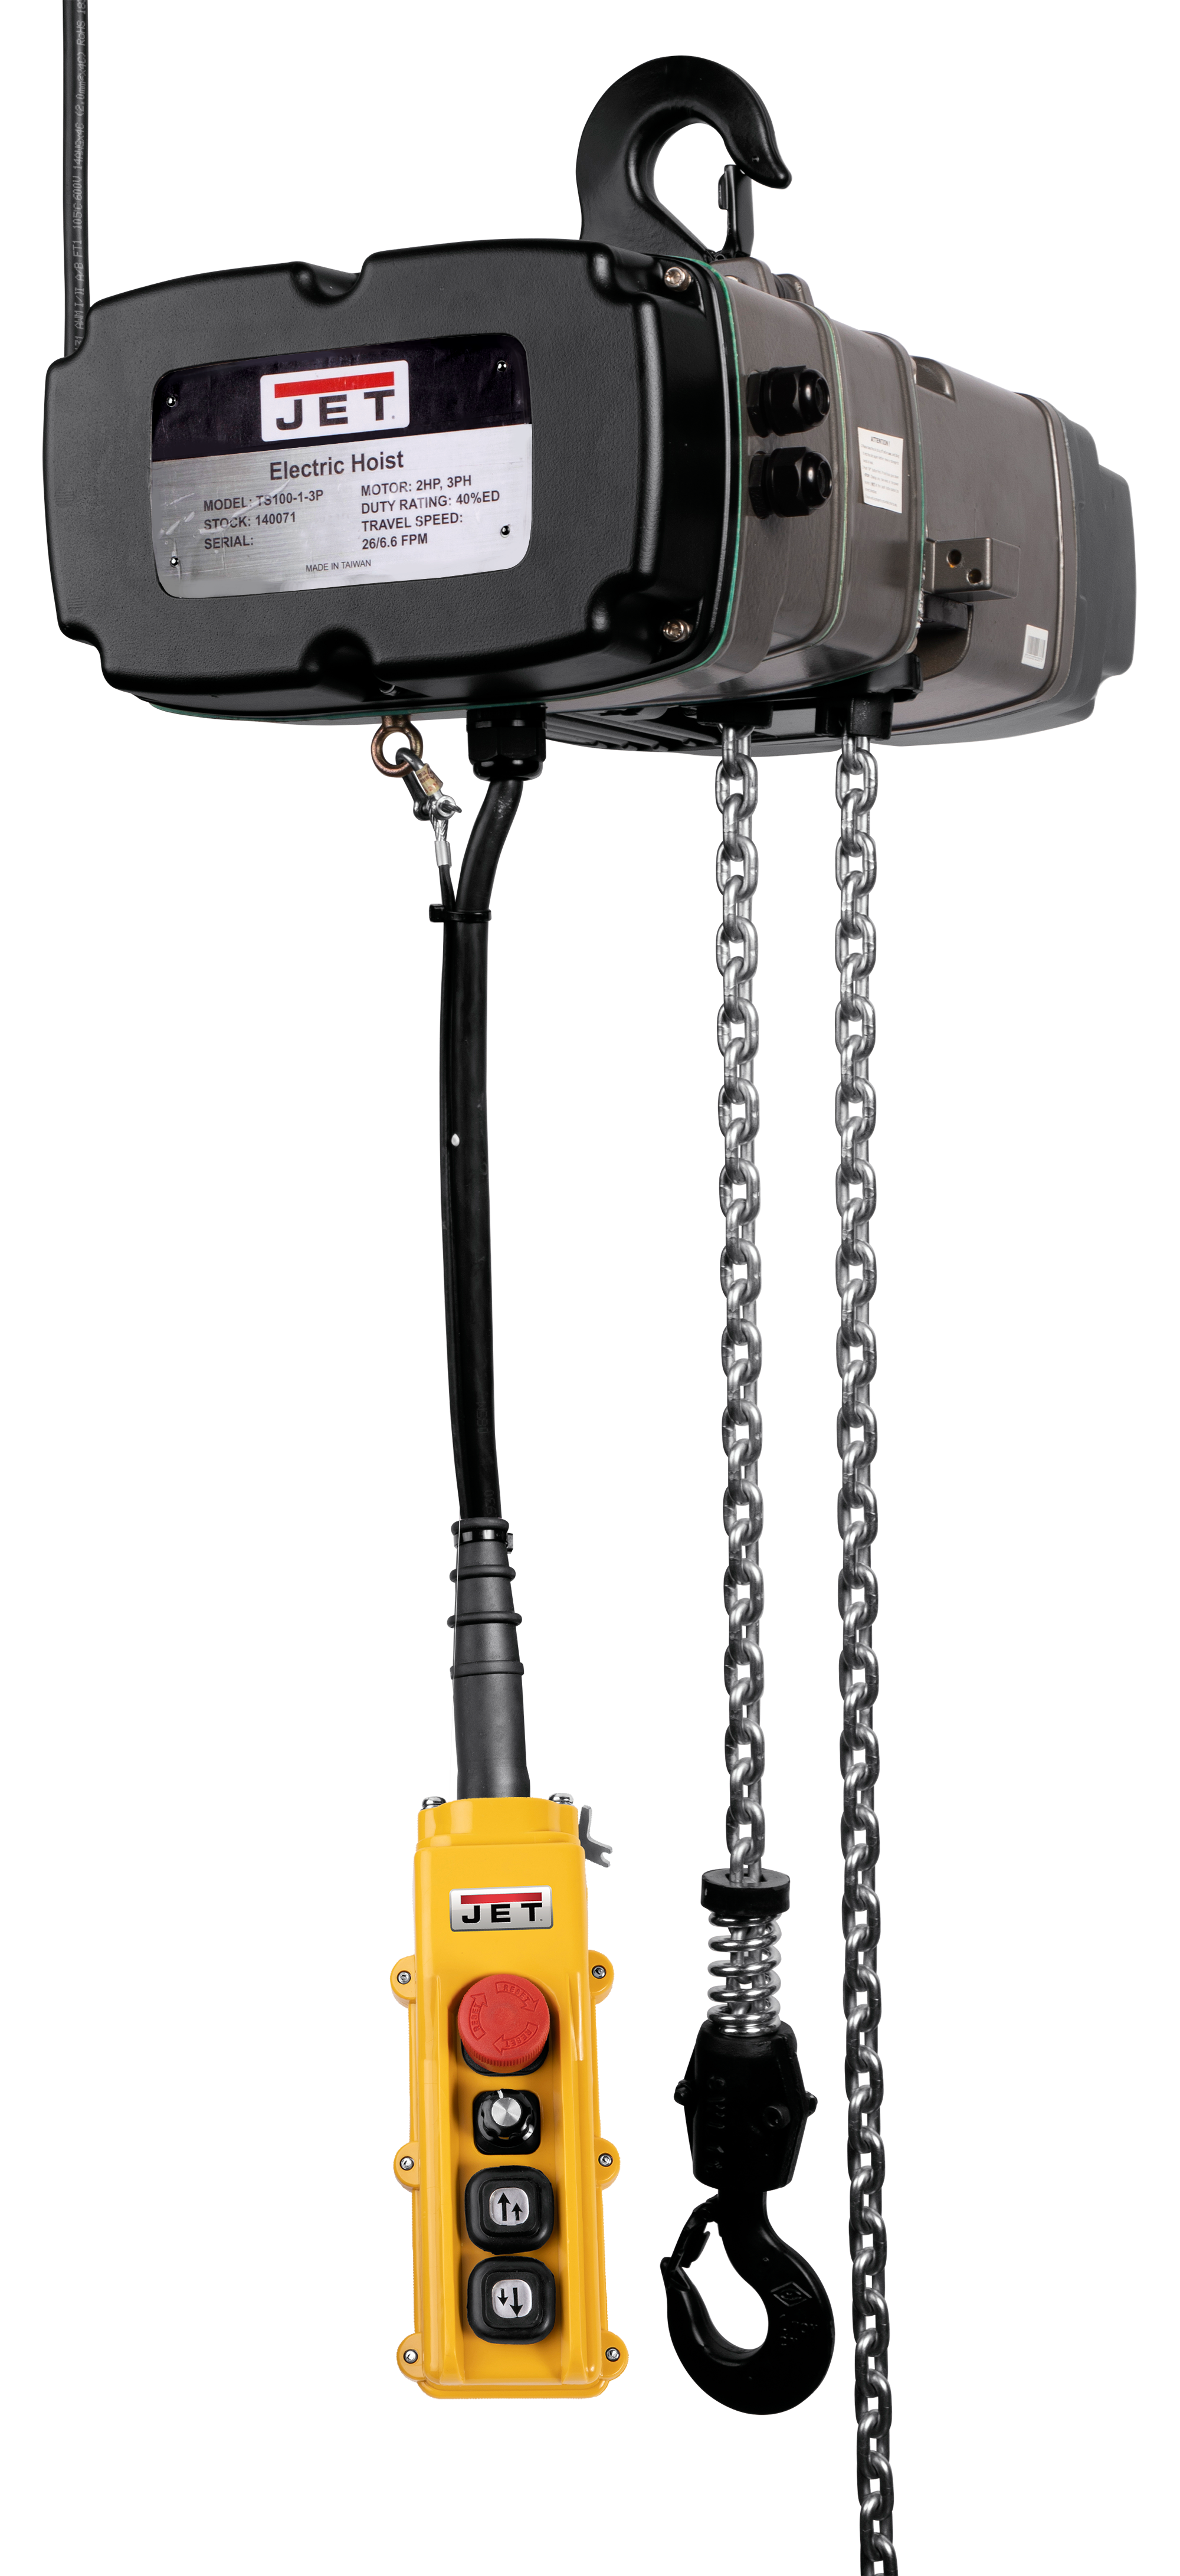 TS500-230-010,5-Ton Two Speed Electric Chain Hoist  3-Phase 10' Lift